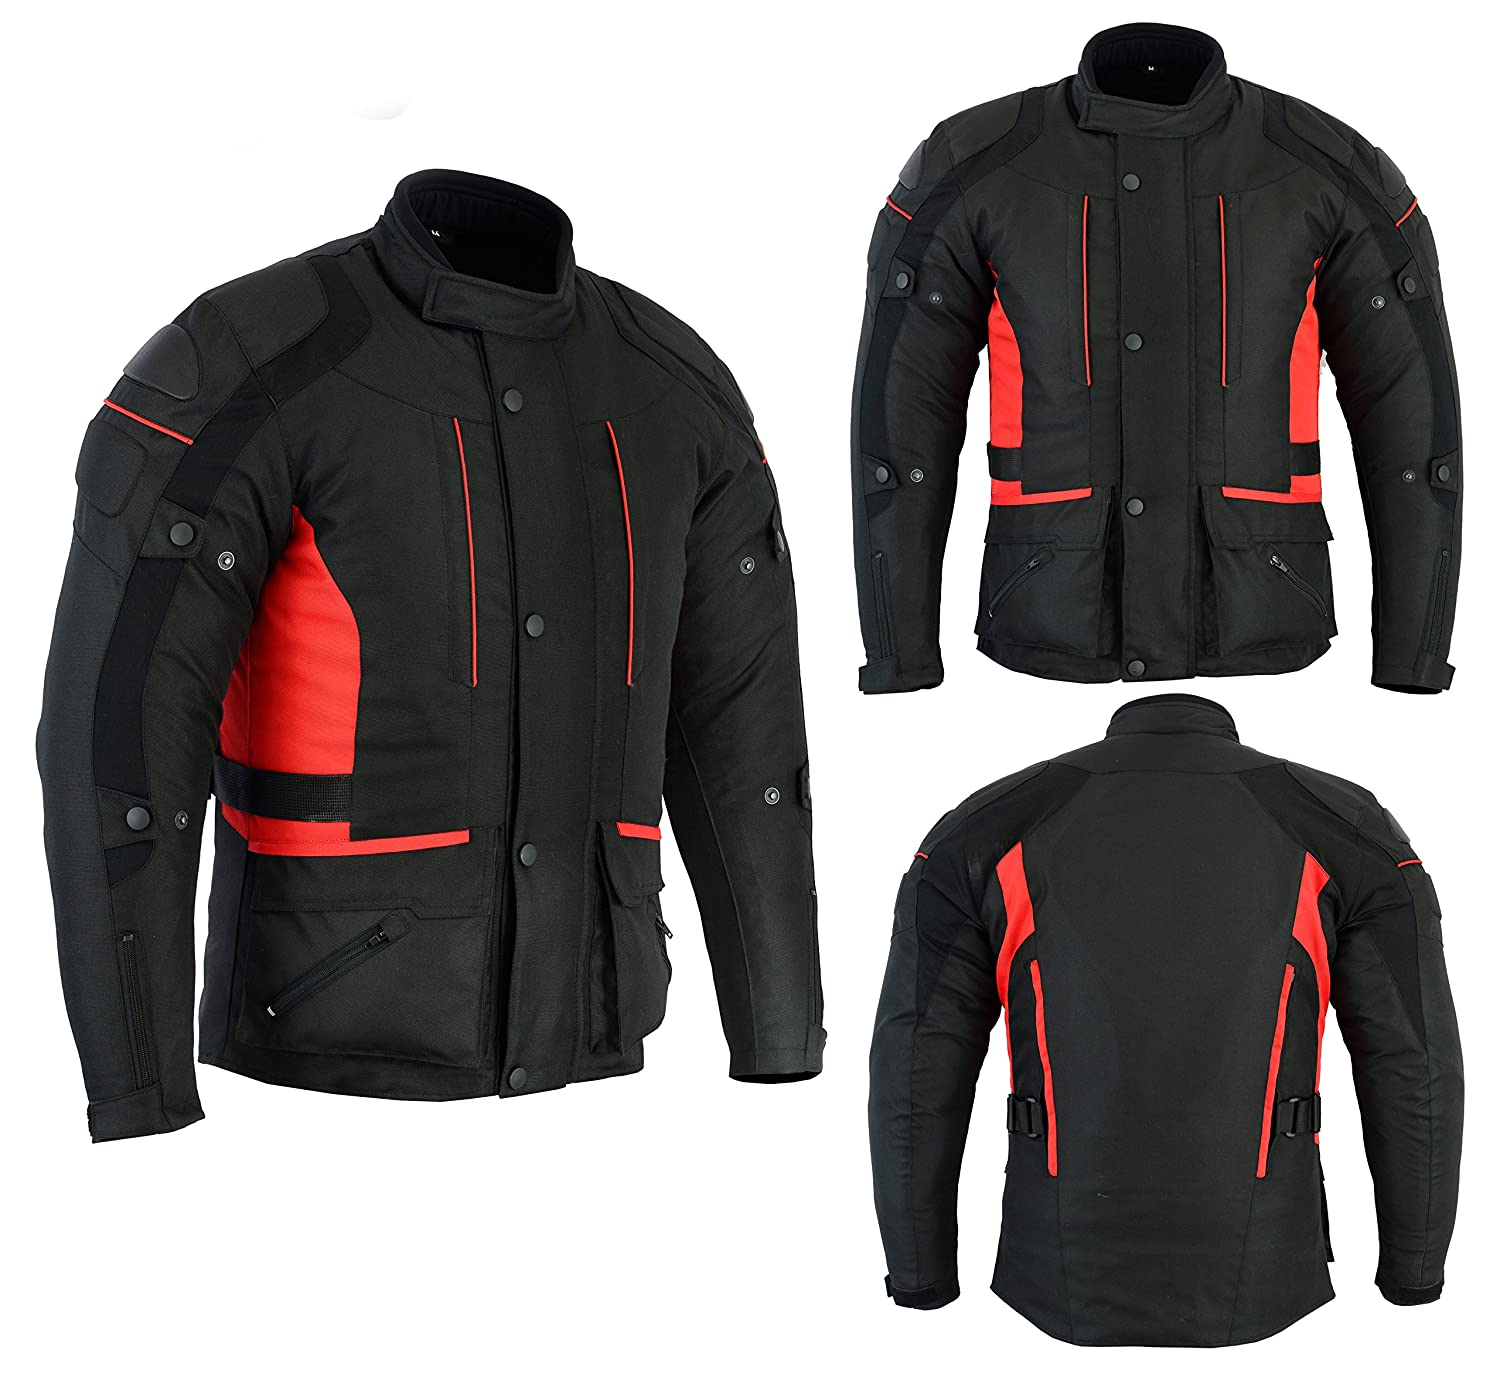 Mens Black/Grey Black/Red Black/High Viz Textile Motorcycle Motorbike Jacket Waterproof CE Armoured by Sterling Sports® (Black Grey, Small (36-38')) Small (36-38)) Sterling Sports® BRBGBH